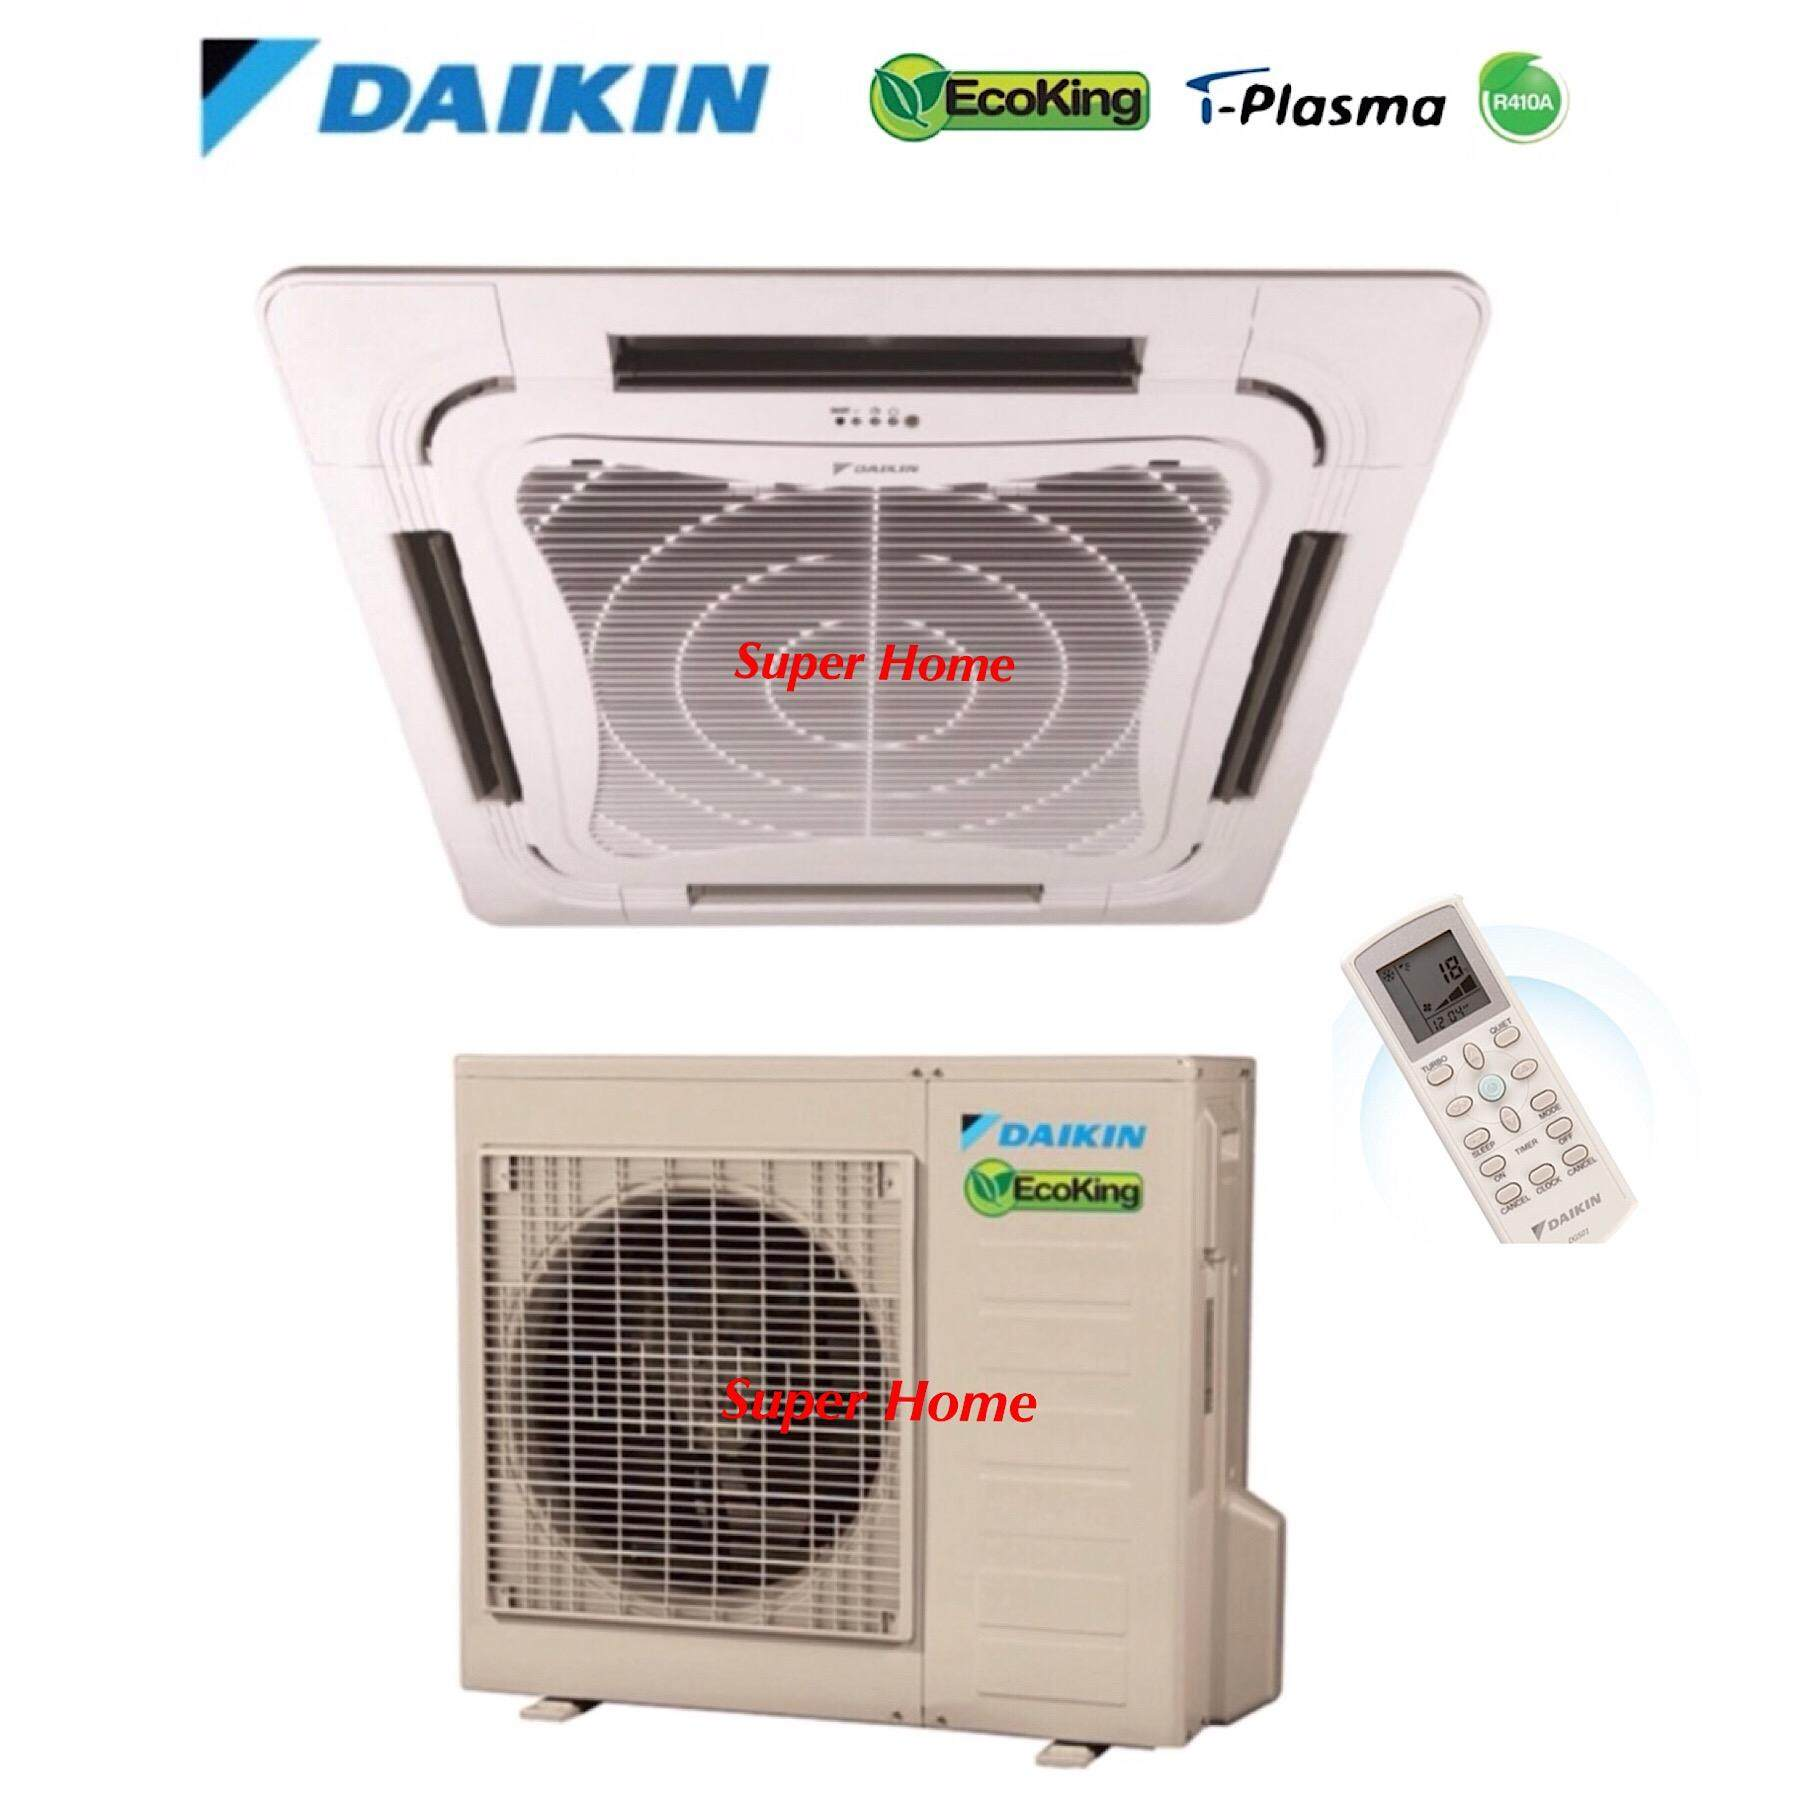 Product Details Of Daikin 3 0hp Eco King Ceiling Cassette Type Air Conditioner Fcn30f Rn30c R410a Non Inverter Surround Series